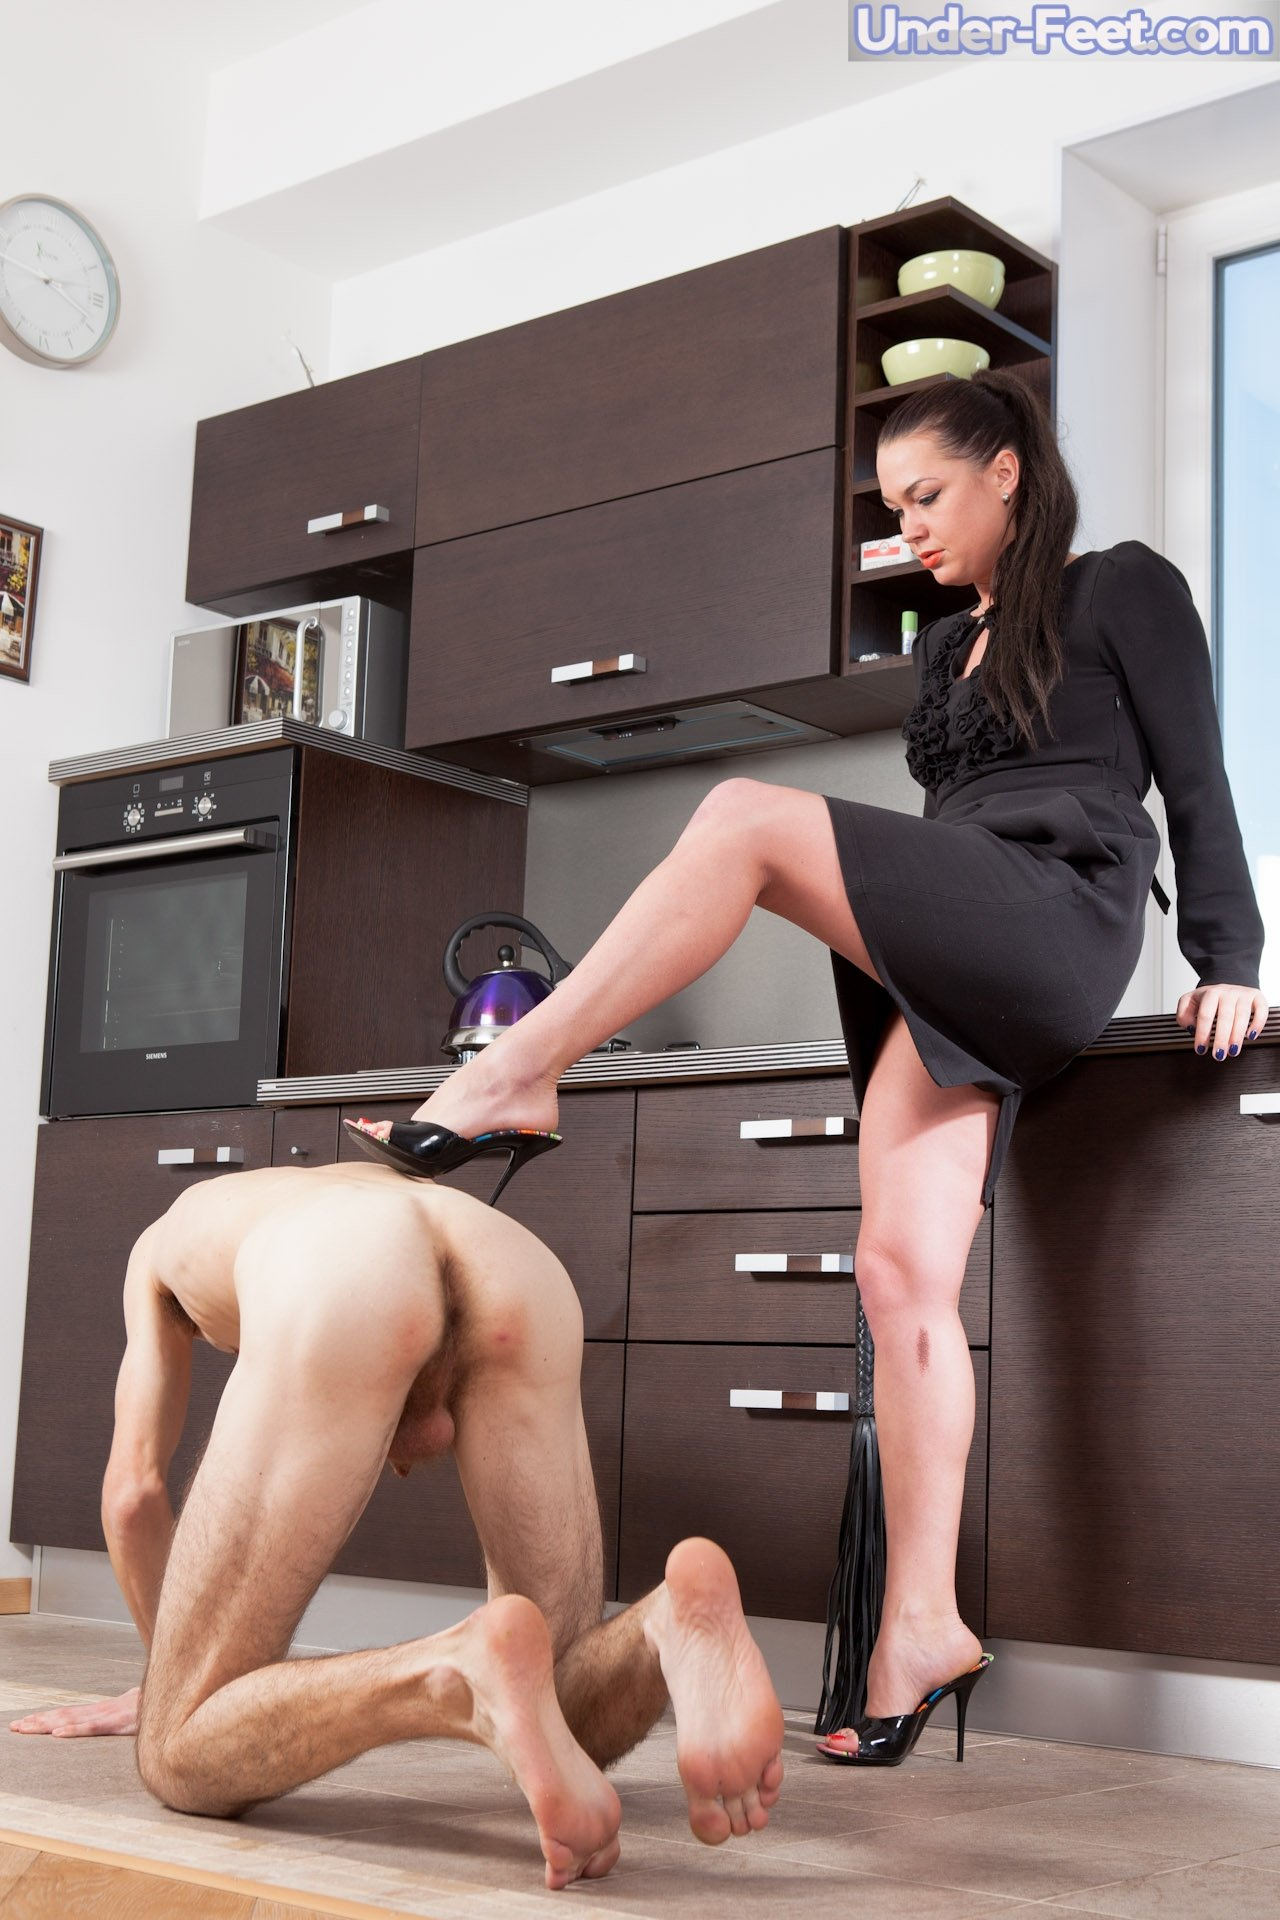 Cfnm secret 7 Slut wife fuck security man at hotel